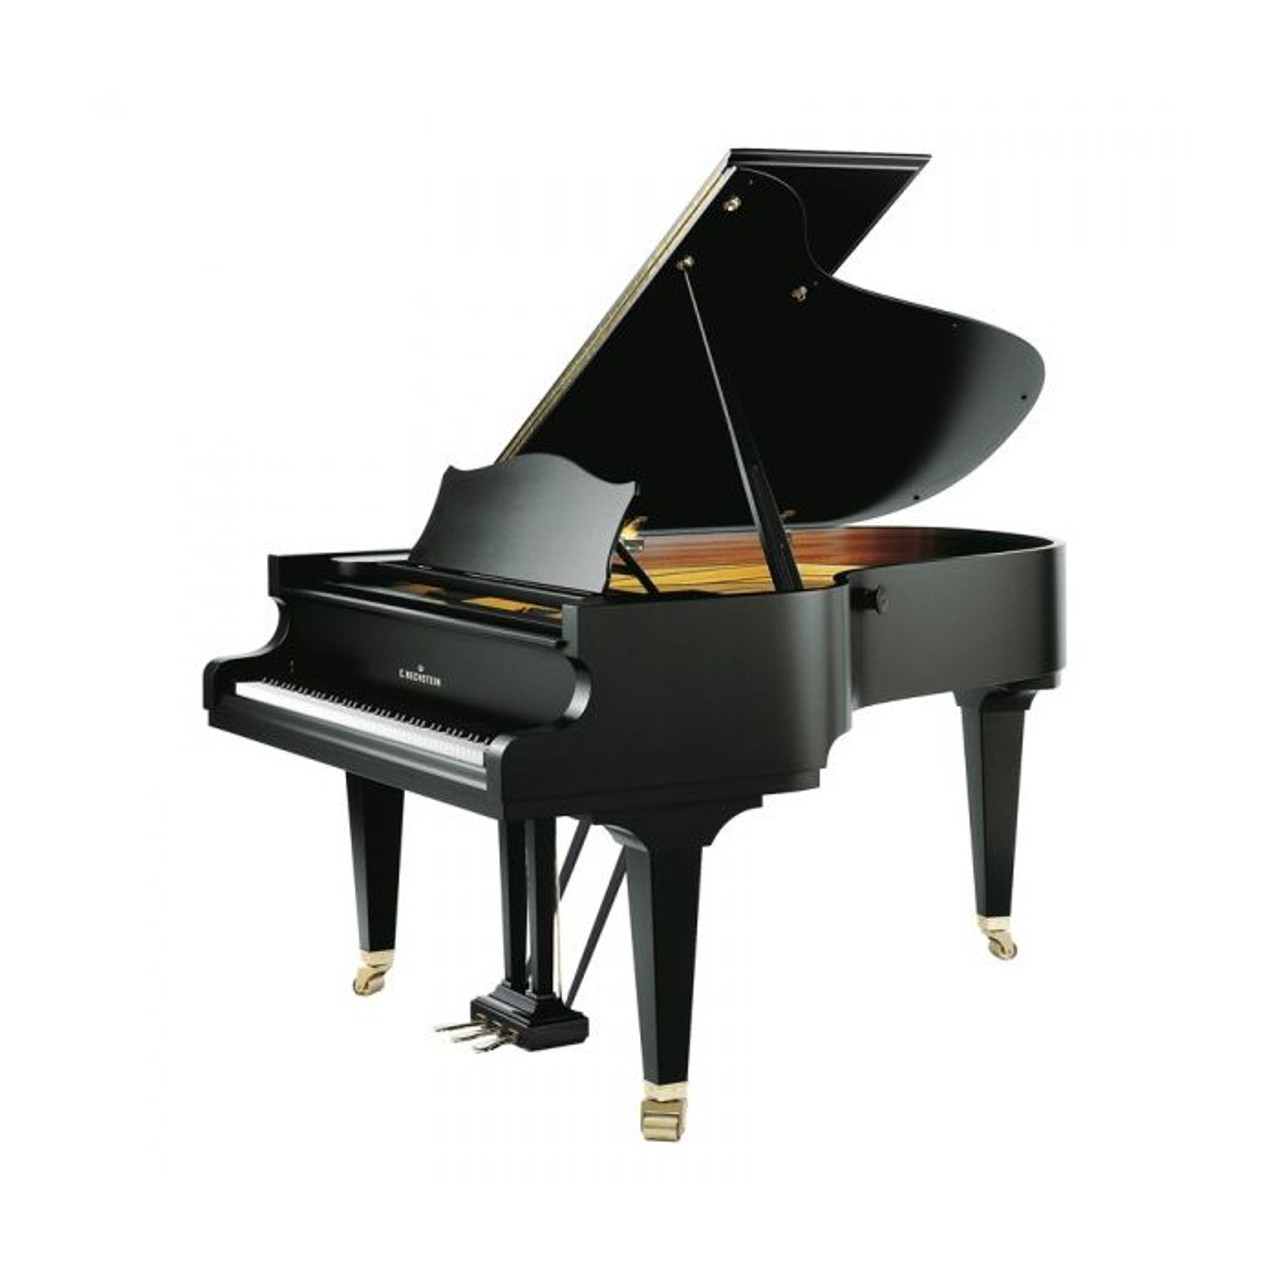 C.Bechstein MP 192 Grand Piano